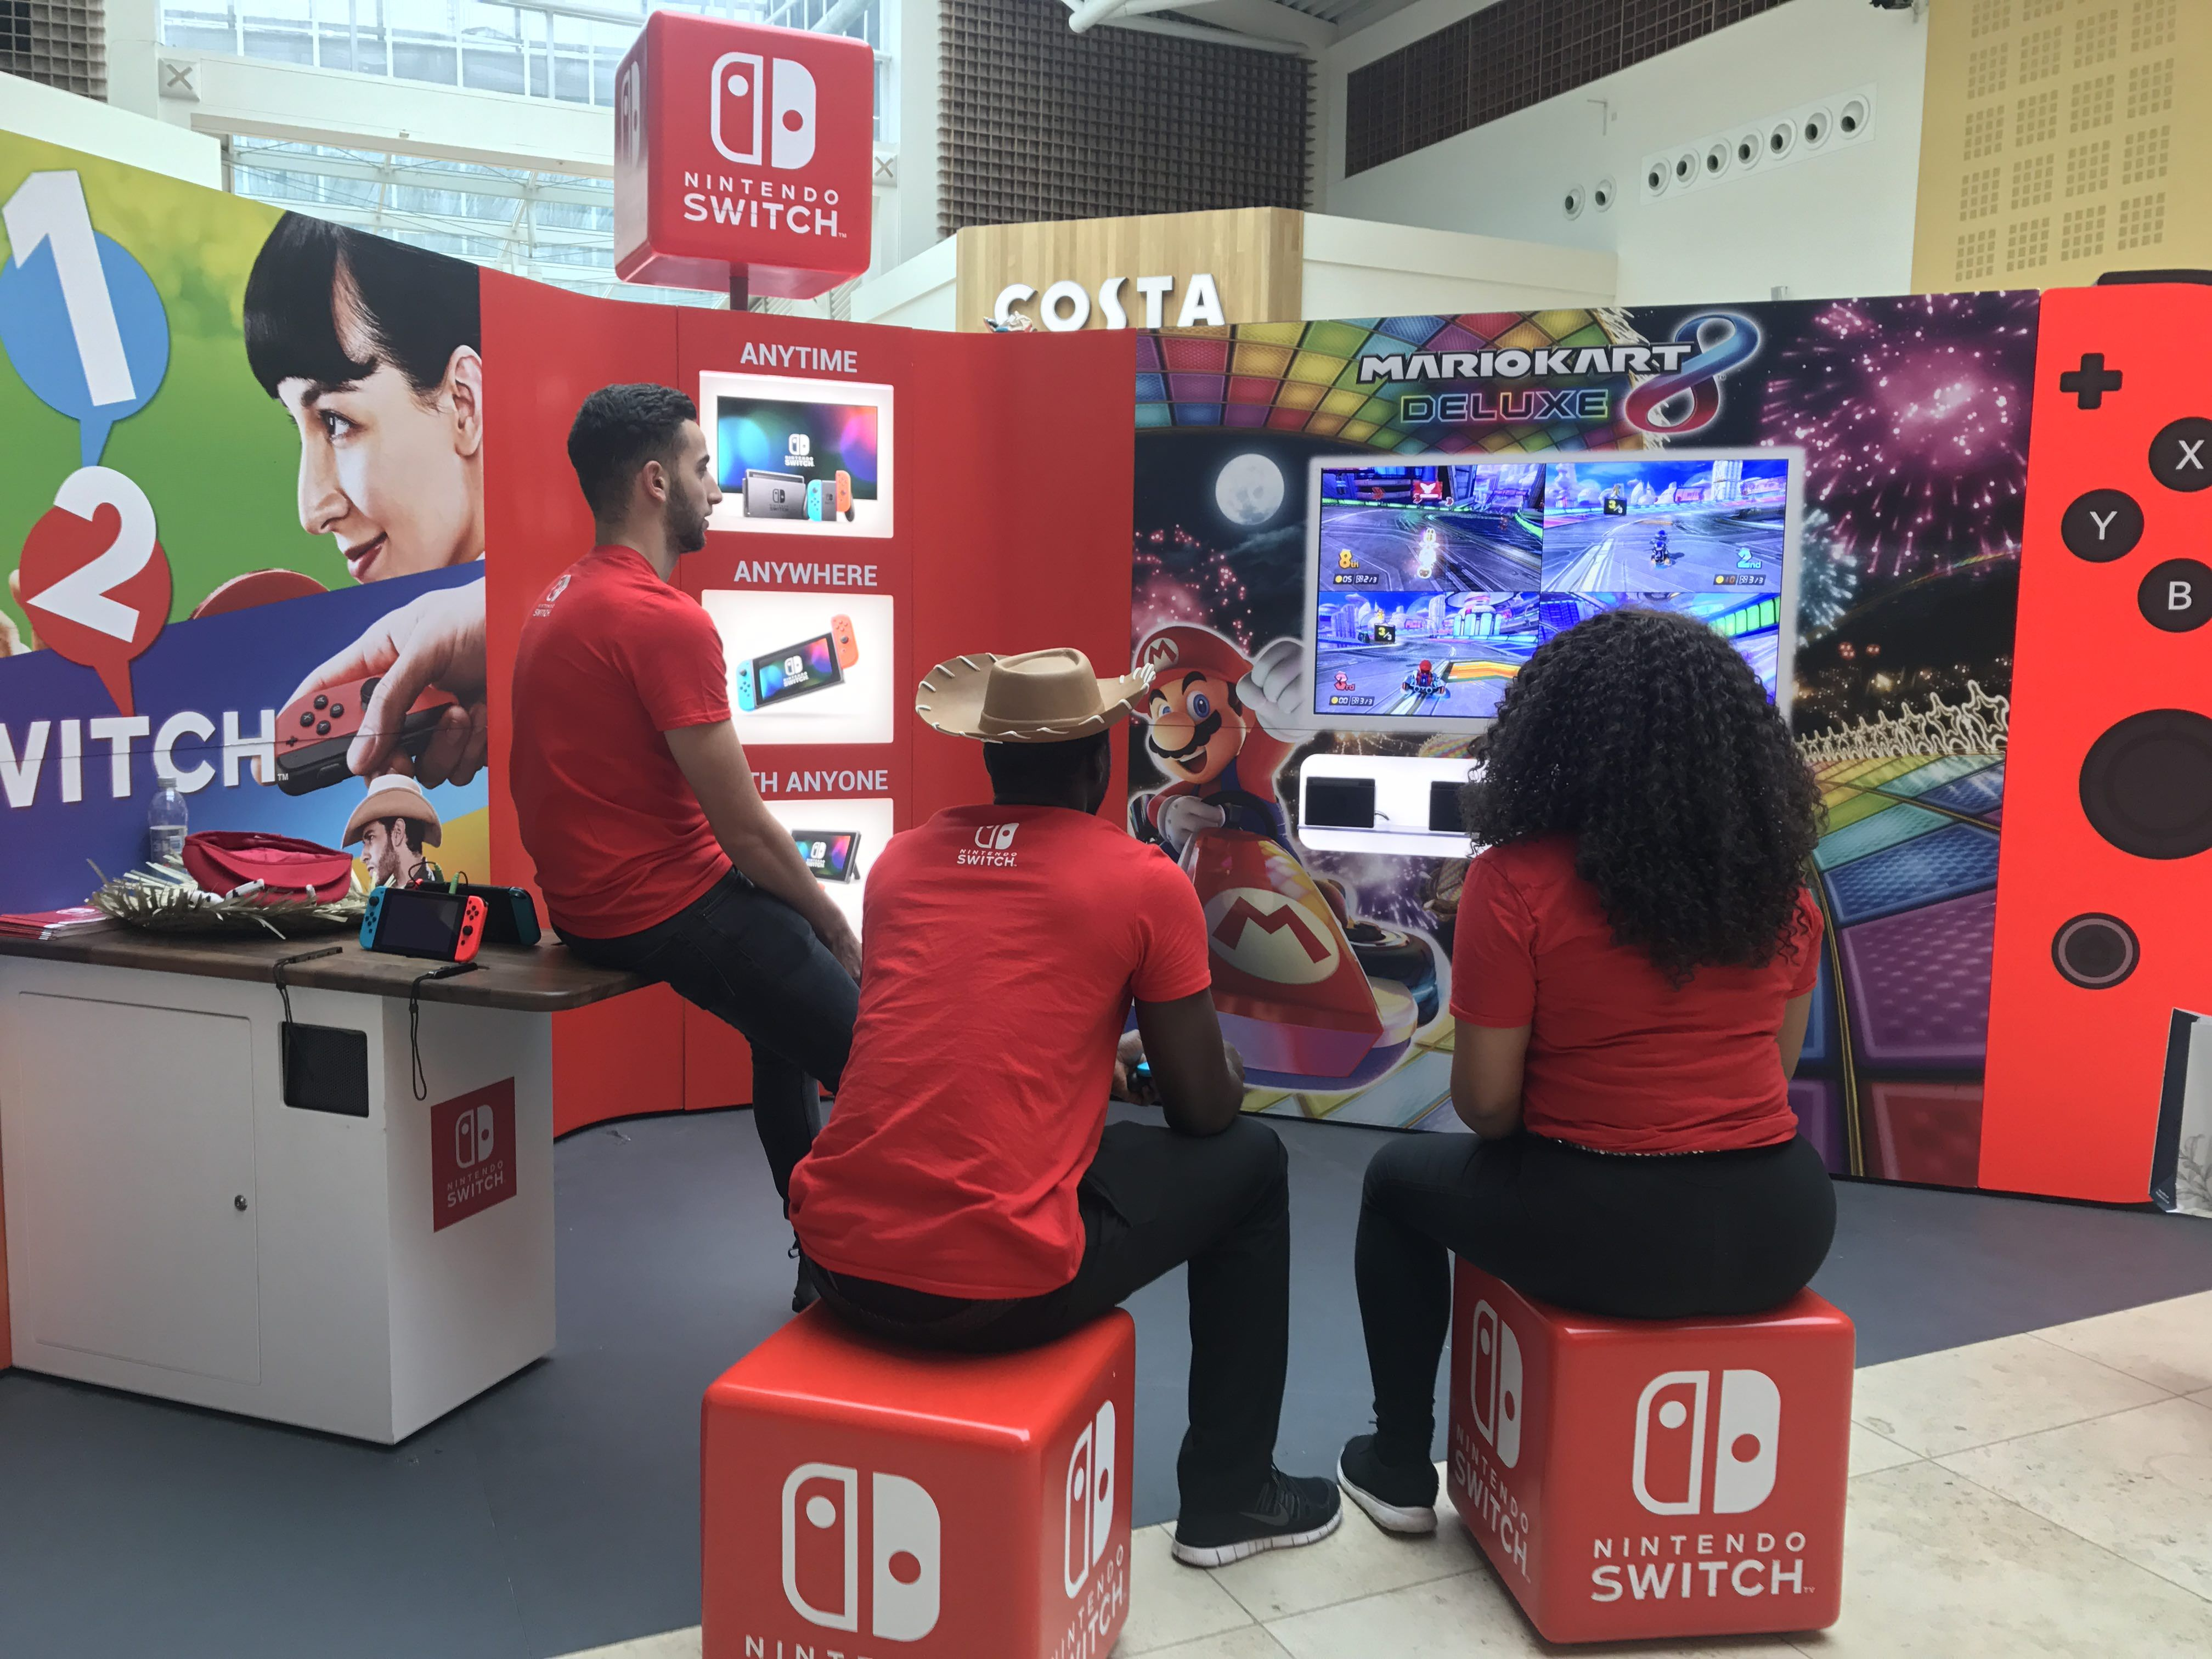 Switch display at mall in England http://bit.ly/2lnzap3 #nintendo